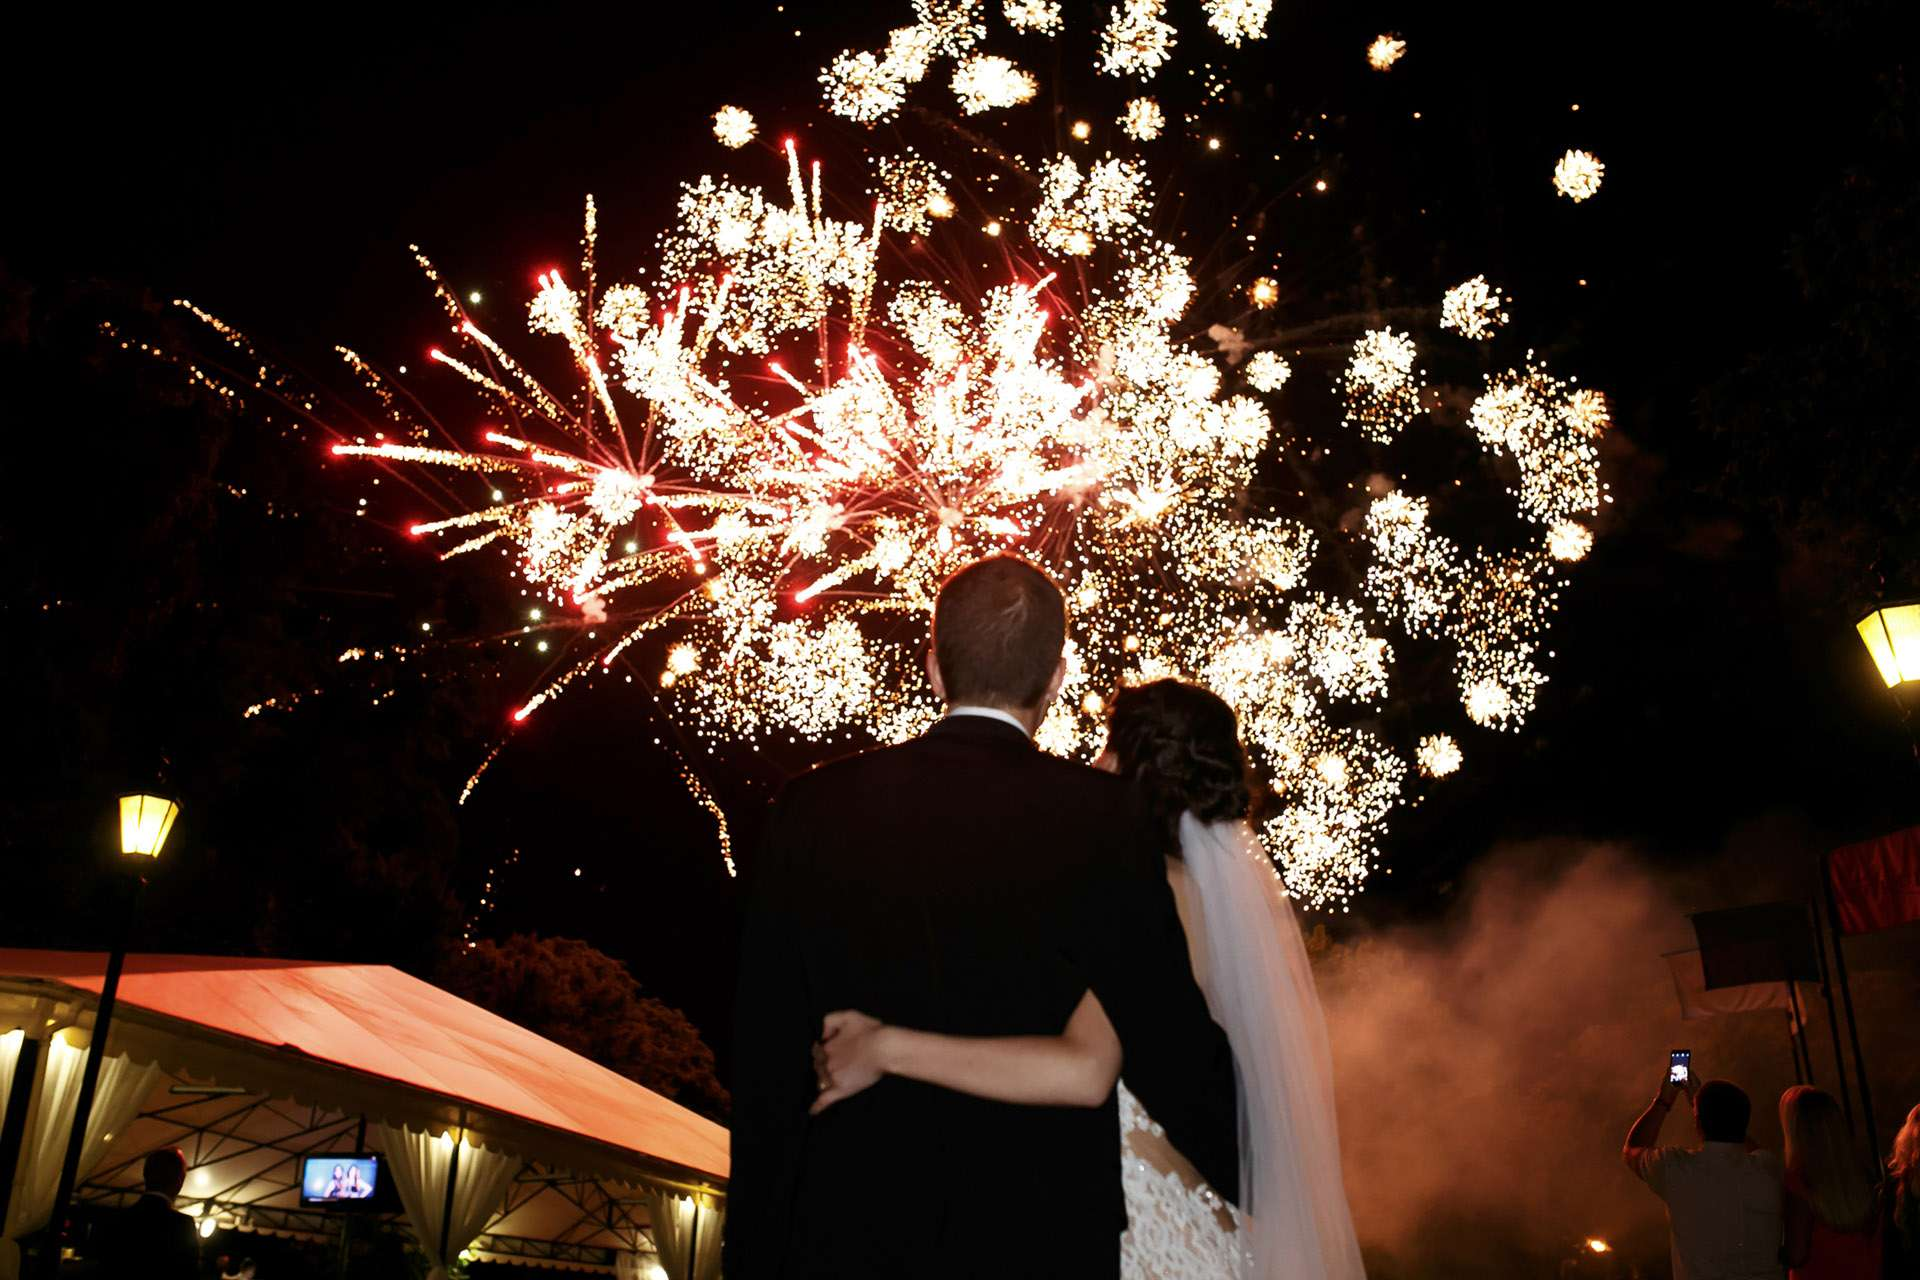 Happy hugging bride and groom watching beautiful colorful fireworks for weddings in night sky